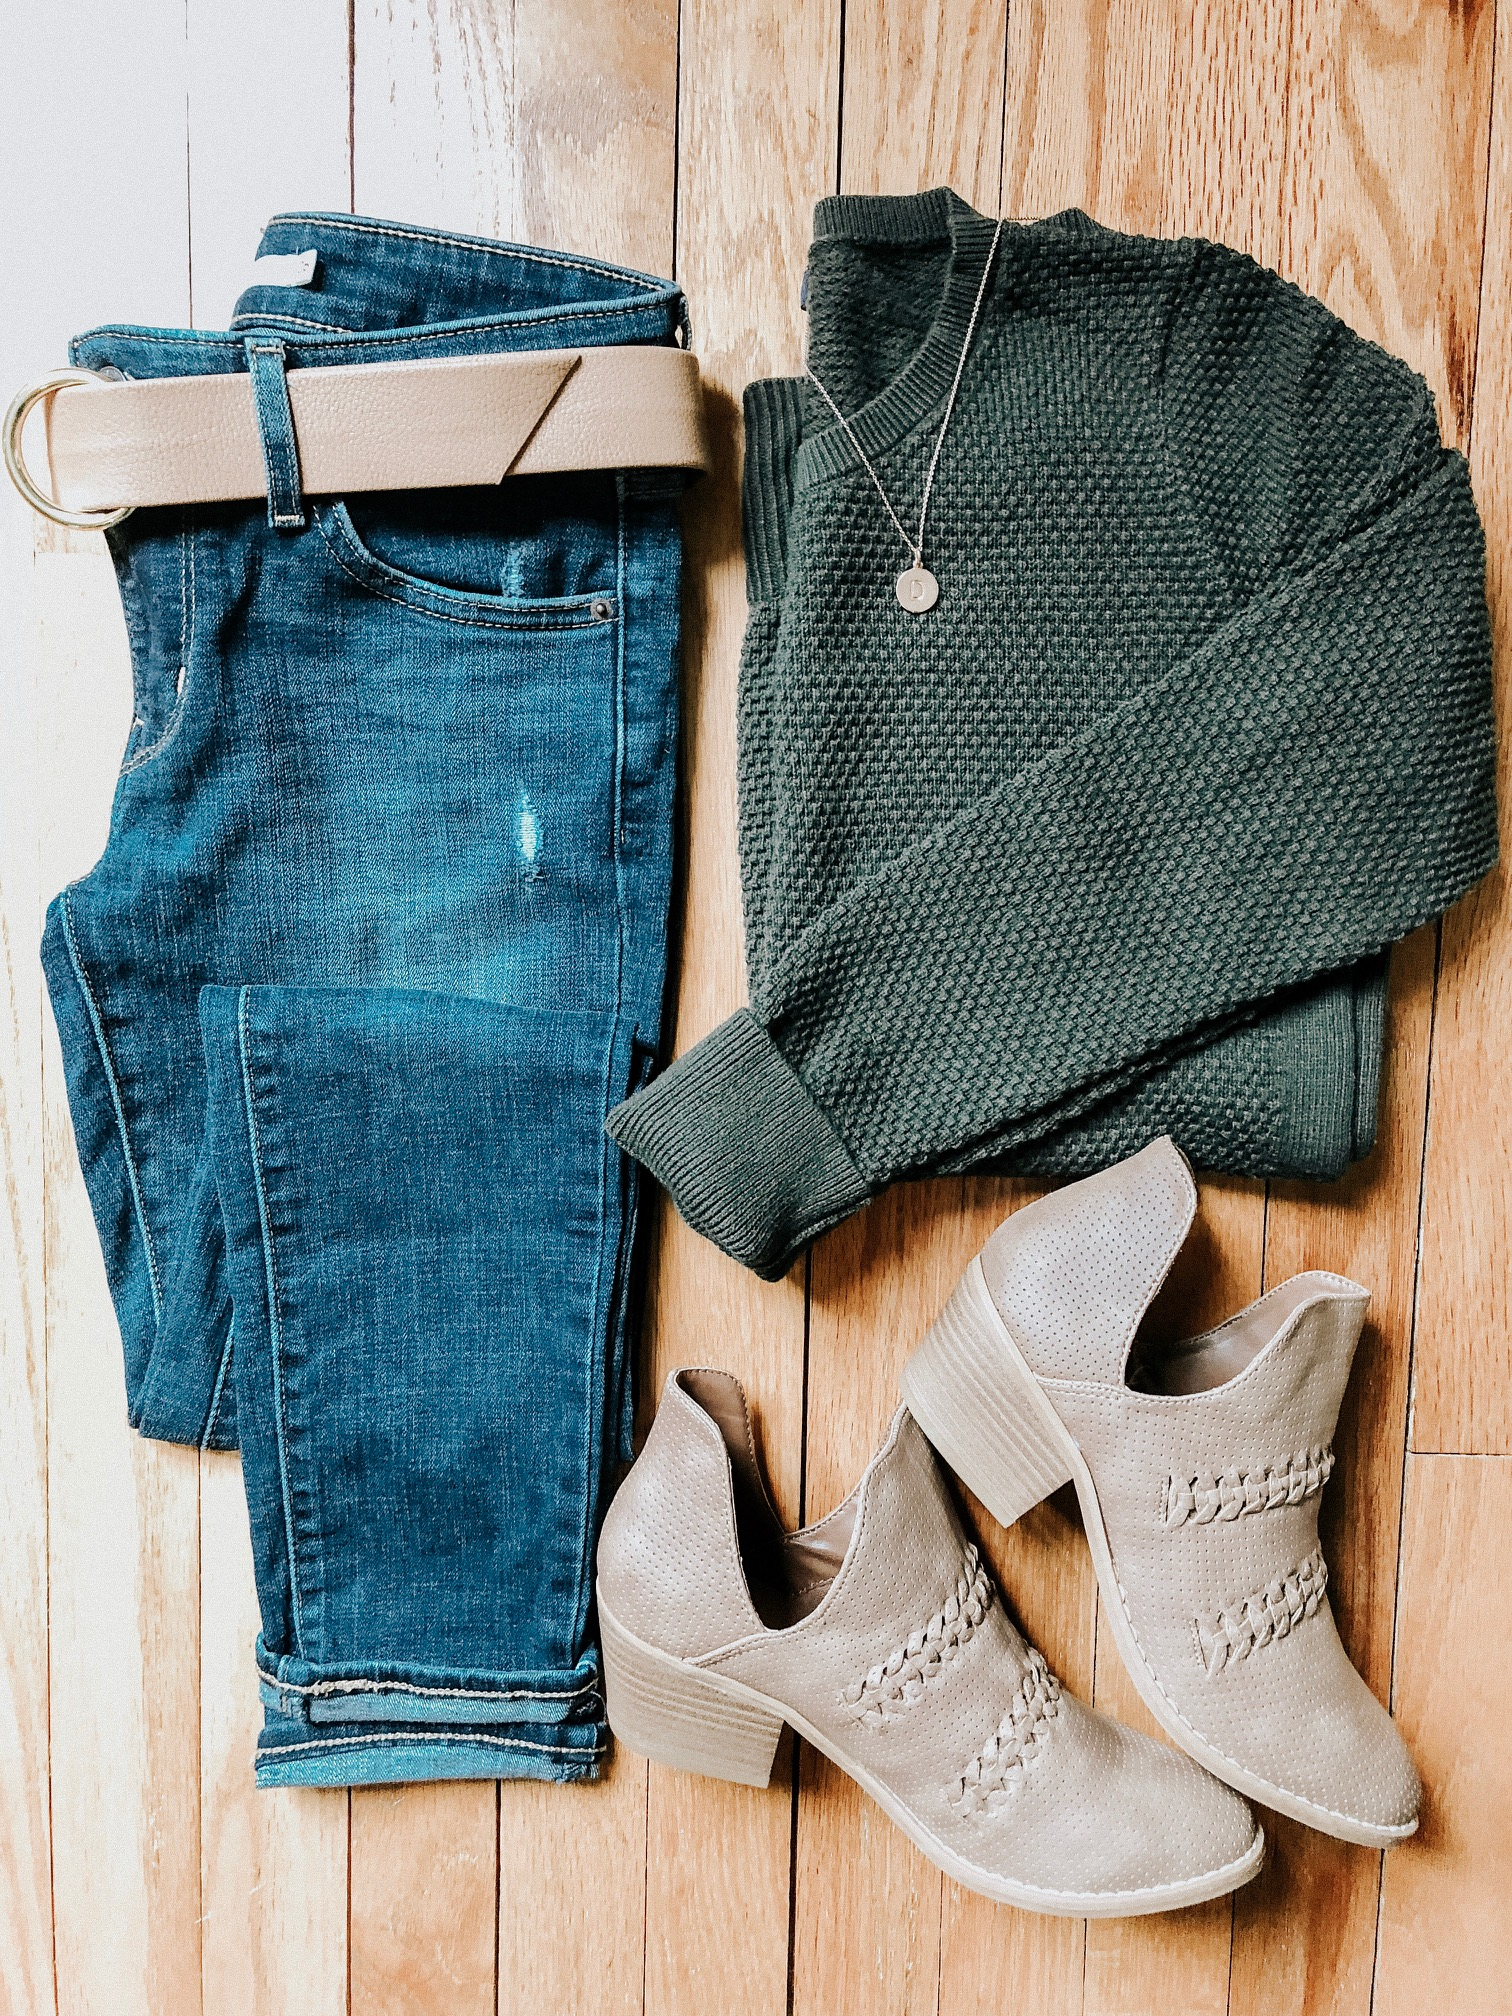 Fall Instagram Favorites | Daily Splendor Life and Style Blog | distressed denim, sweater, booties bag #casualstyle #casualoutfit #momstyle #everydayfashion #fallstyle #fallneutrals